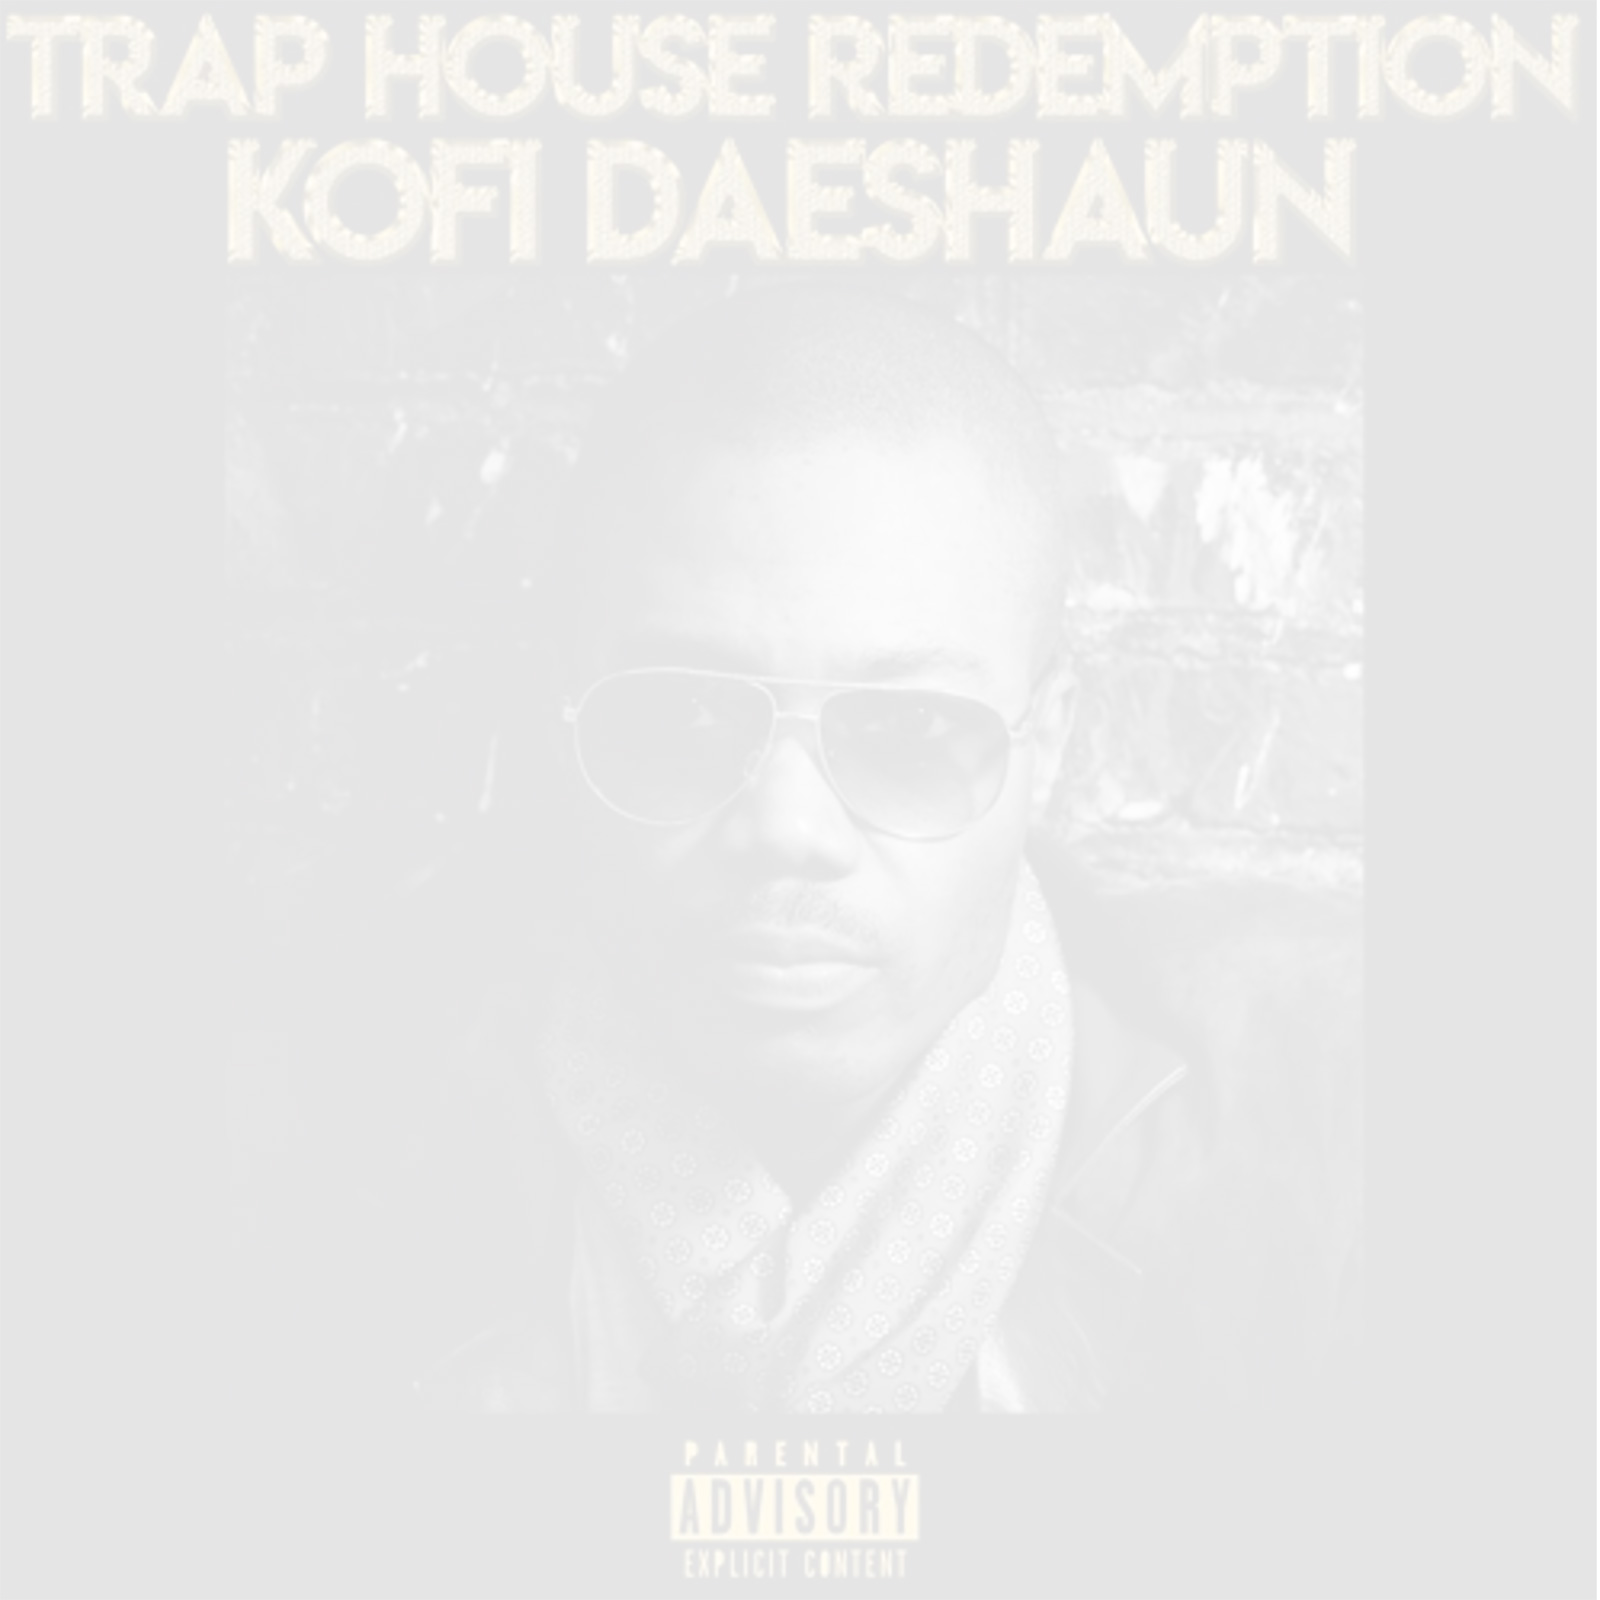 Trap House Redemption by Kofi Daeshaun